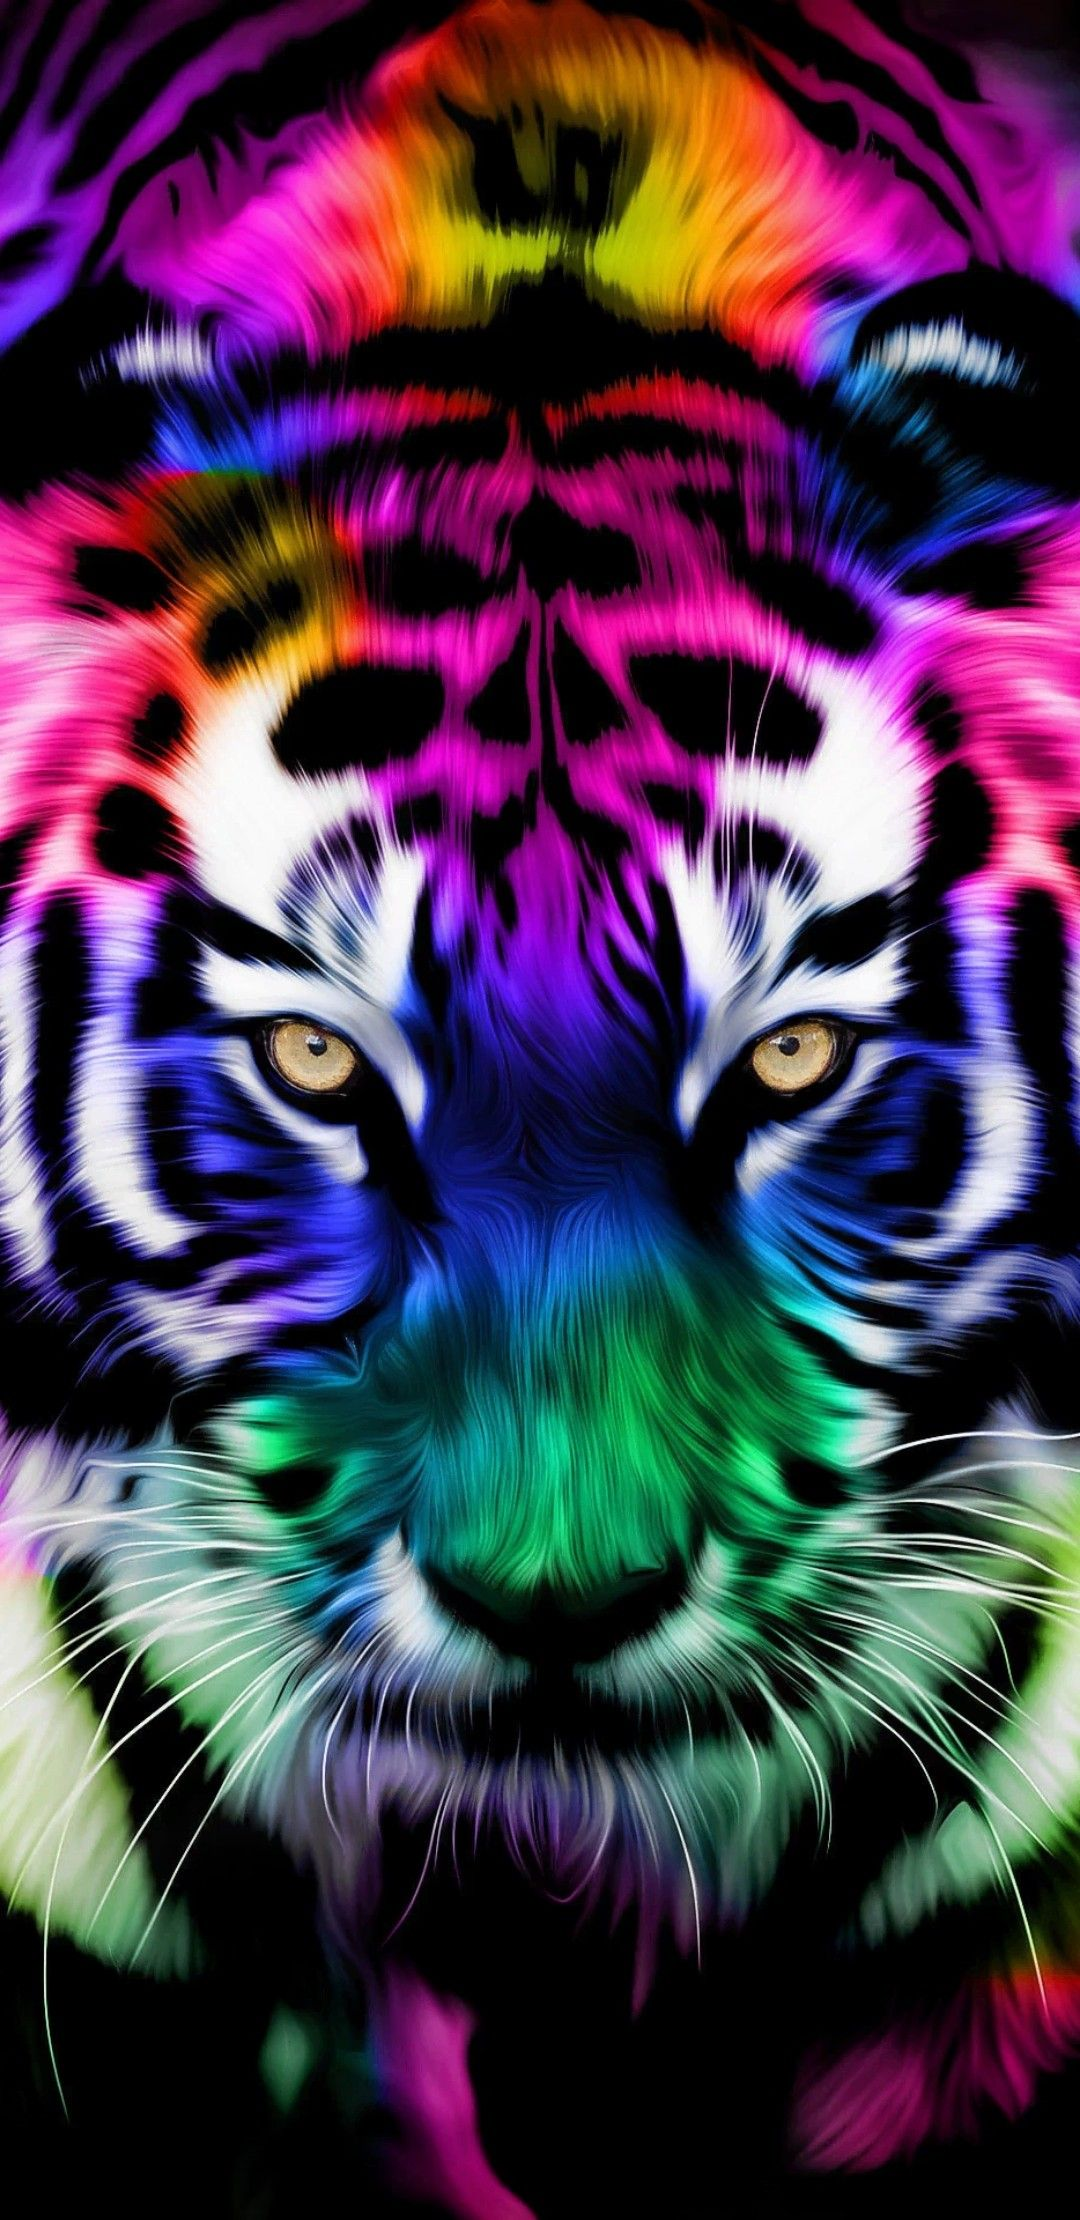 Pin by Amanda Perkins on Backgrounds Tiger wallpaper